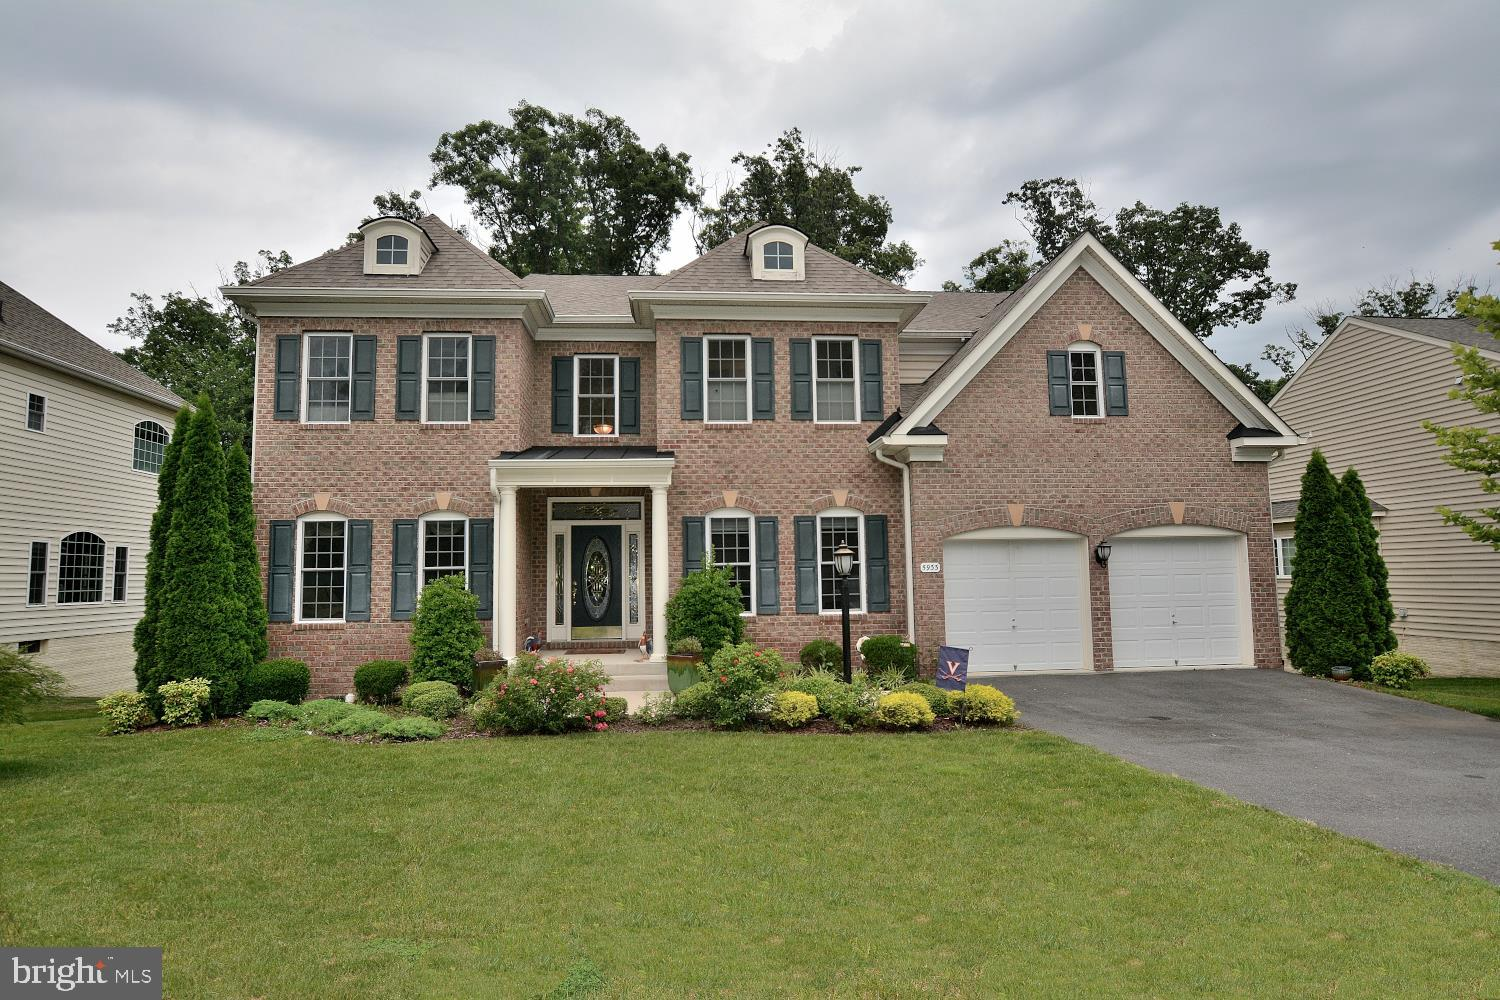 BEAUTIFUL HOME IN ESTABLISHED NEIGHBOR. 10 MINUTES FROM FRANCONIA RD, SPRINGFIELD METRO. NEAR SHOPPING CENTERS, RESTAURANTS, CHURCHES AND SCHOOLS. 6 BEDROOMS AND 5,5 BATS. BACKS TO TREES. CUL-DE-SAC. FULL FINISHED BASEMENT WITH BEDROOMS AND FULL BATH. 2 CAR GARAGE ATTACHED. 24 hours notice before showing please!